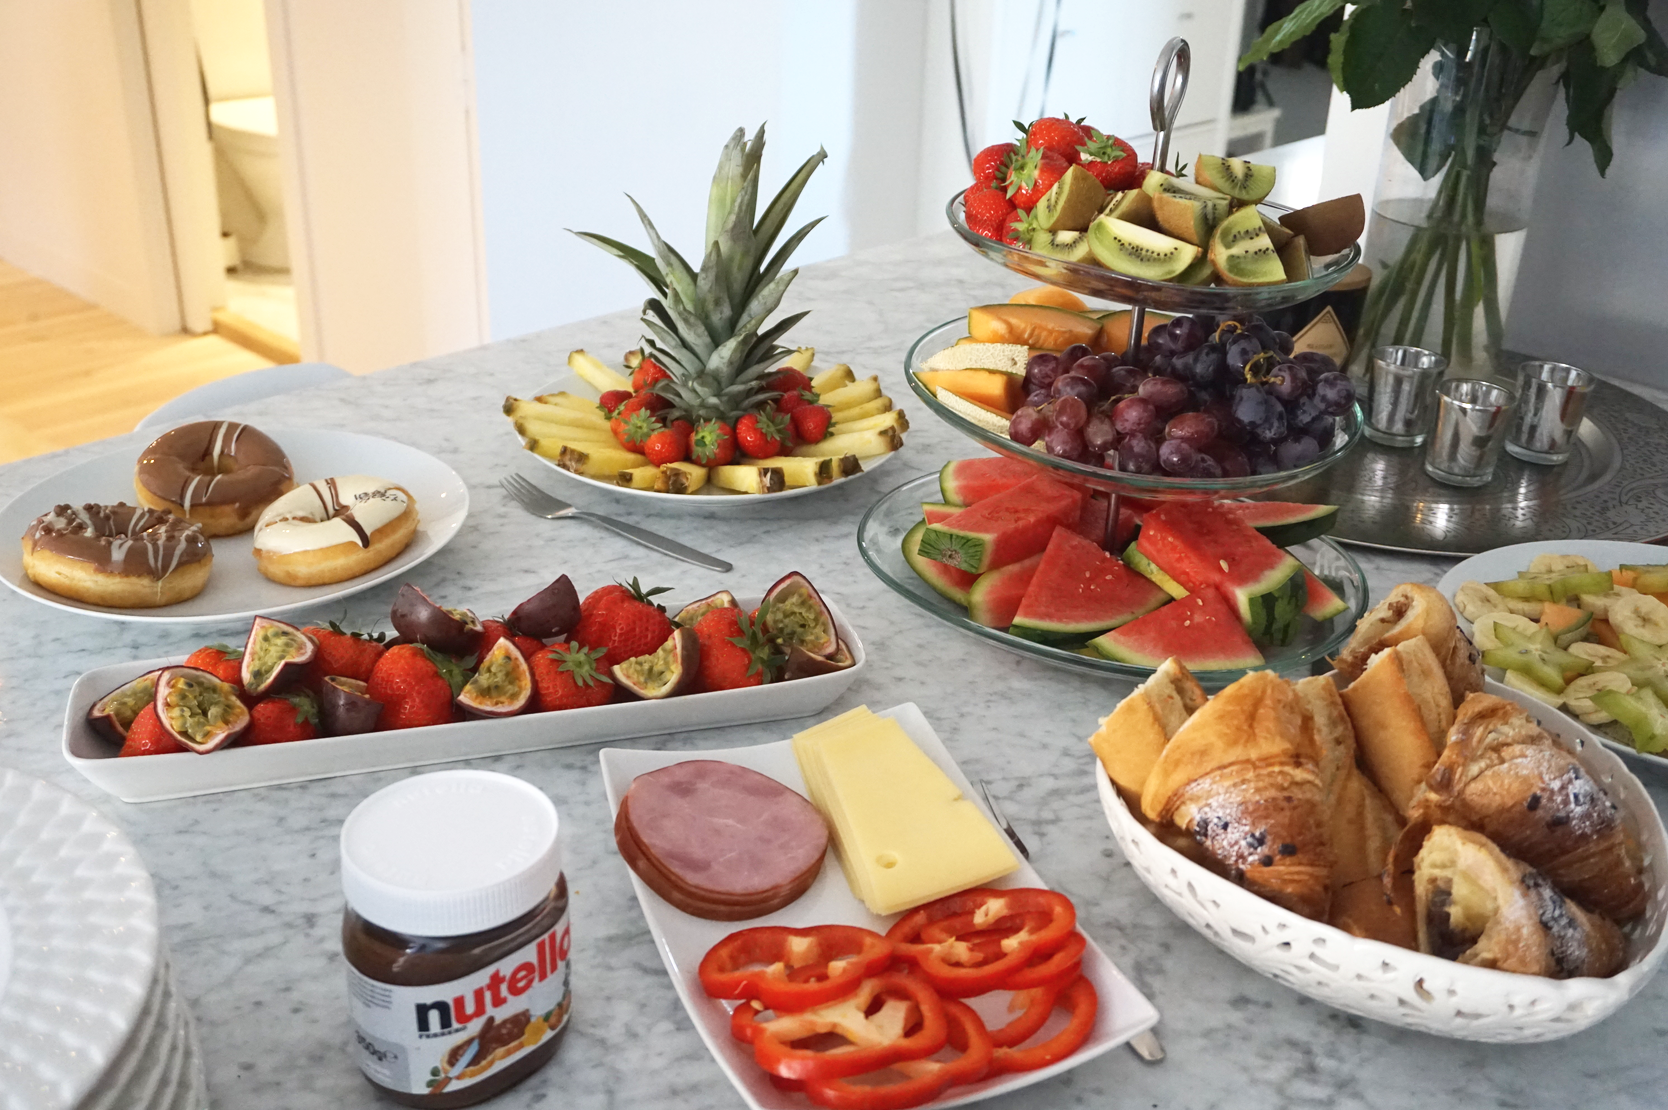 Brunch at my place